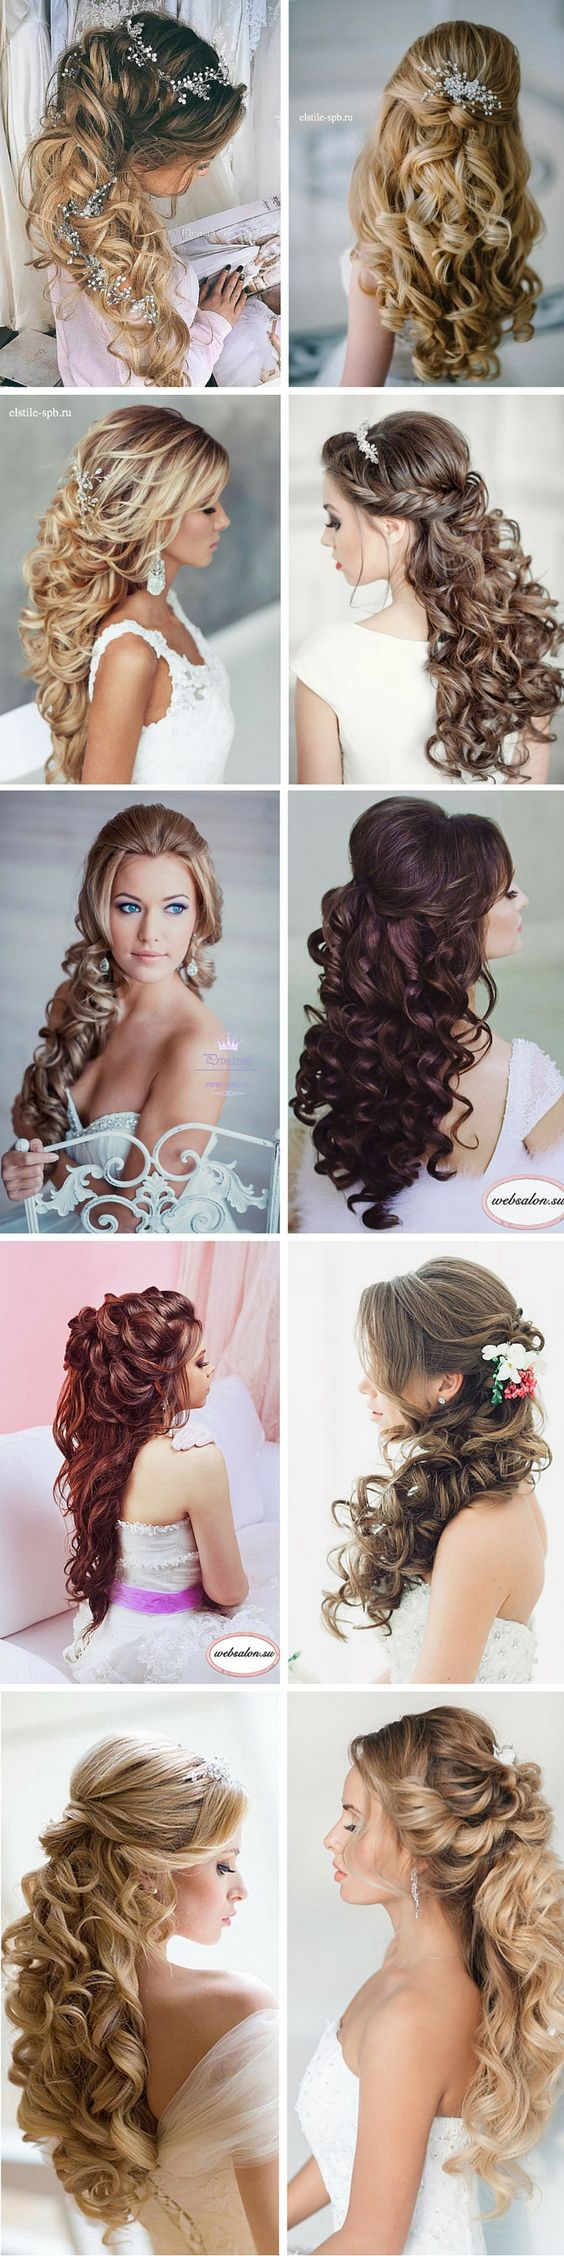 Recent Elegant Bridal Hairdos For Ombre Hair Regarding 100+ Romantic Long Wedding Hairstyles 2019 – Curls, Half Up, Updos (Gallery 8 of 20)